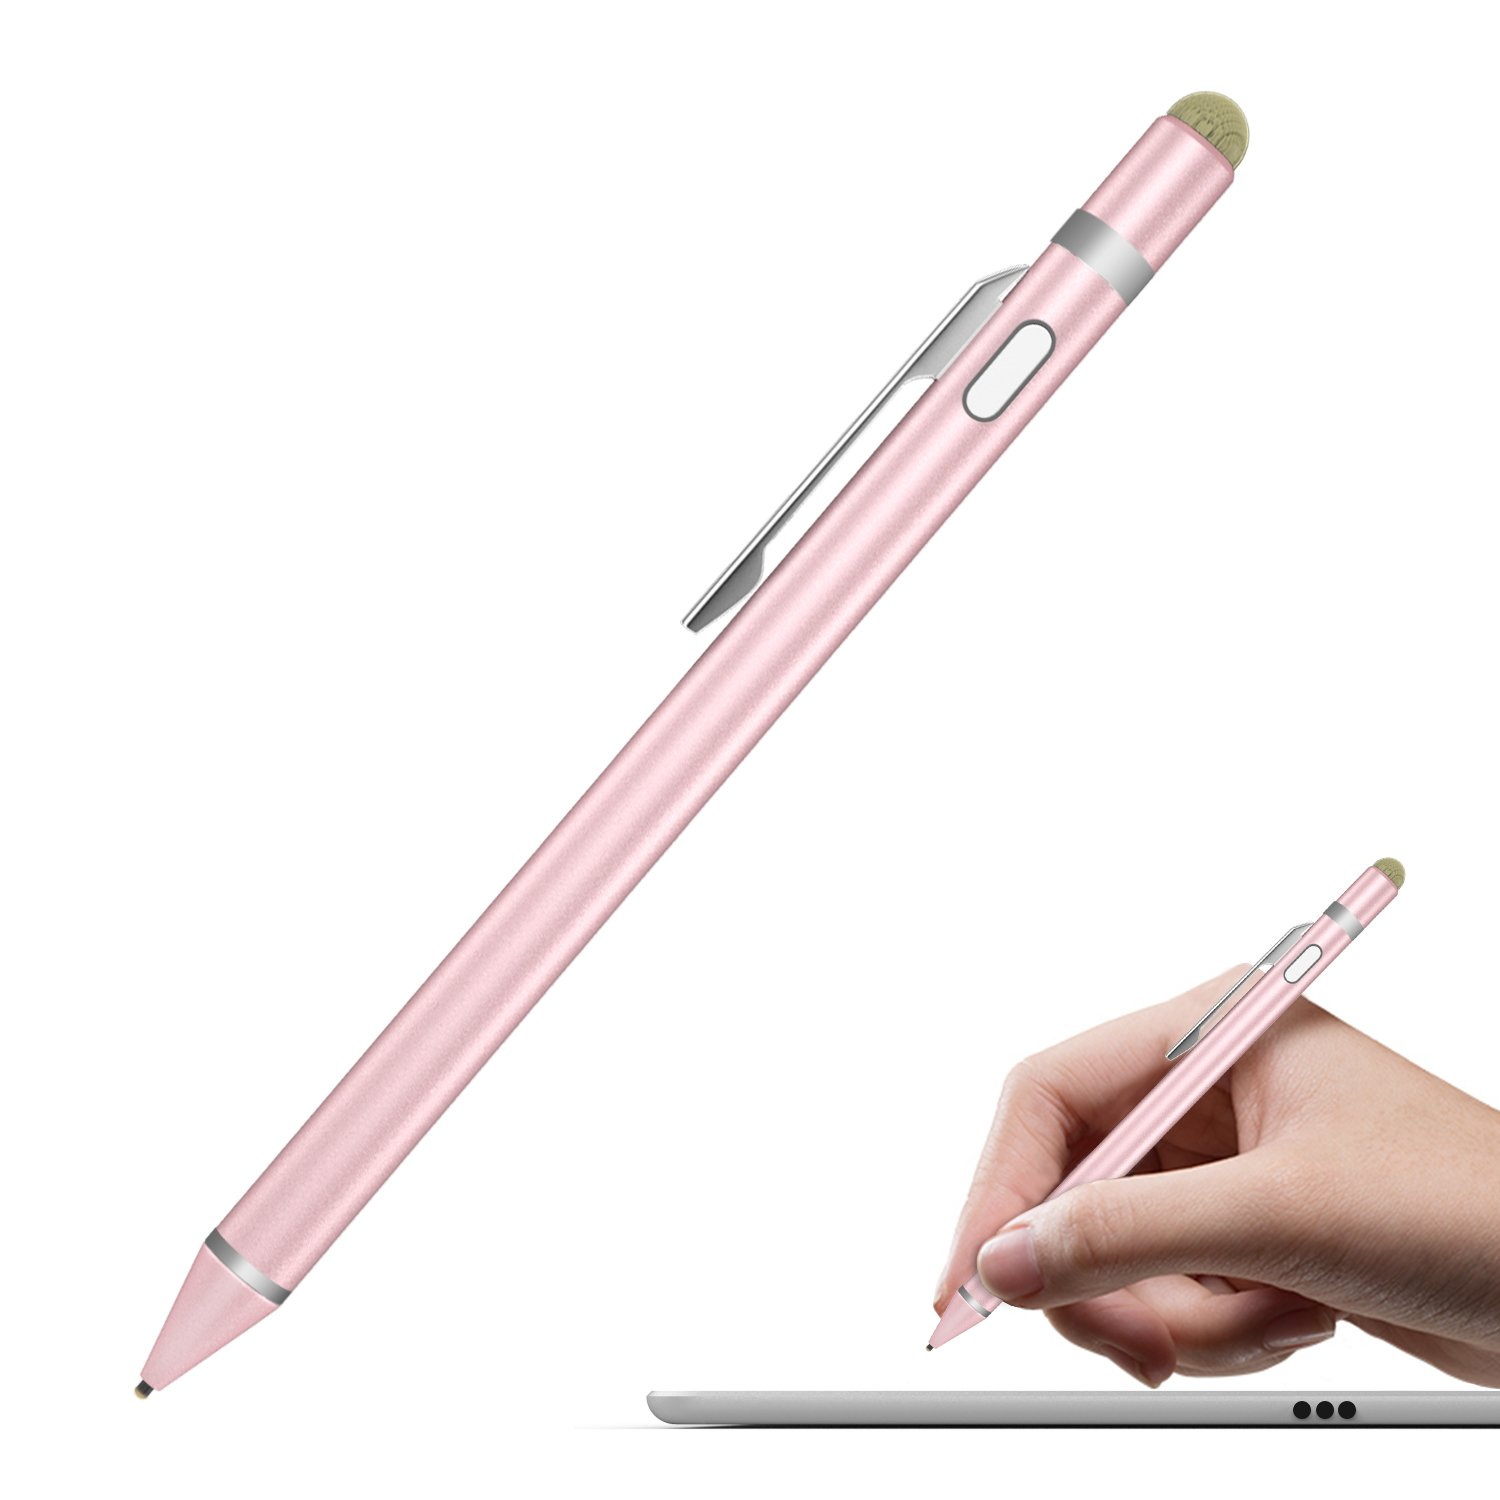 MoKo Universal Active Stylus, 2 in 1 High Precision Sensitivity 1.5mm Capacitive Pen, Metal Stylus Pen for Touch Screen Devices Smartphones & Tablets (iPad, iPhone X/8/8 Plus, Samsung etc.)- Rose Gold